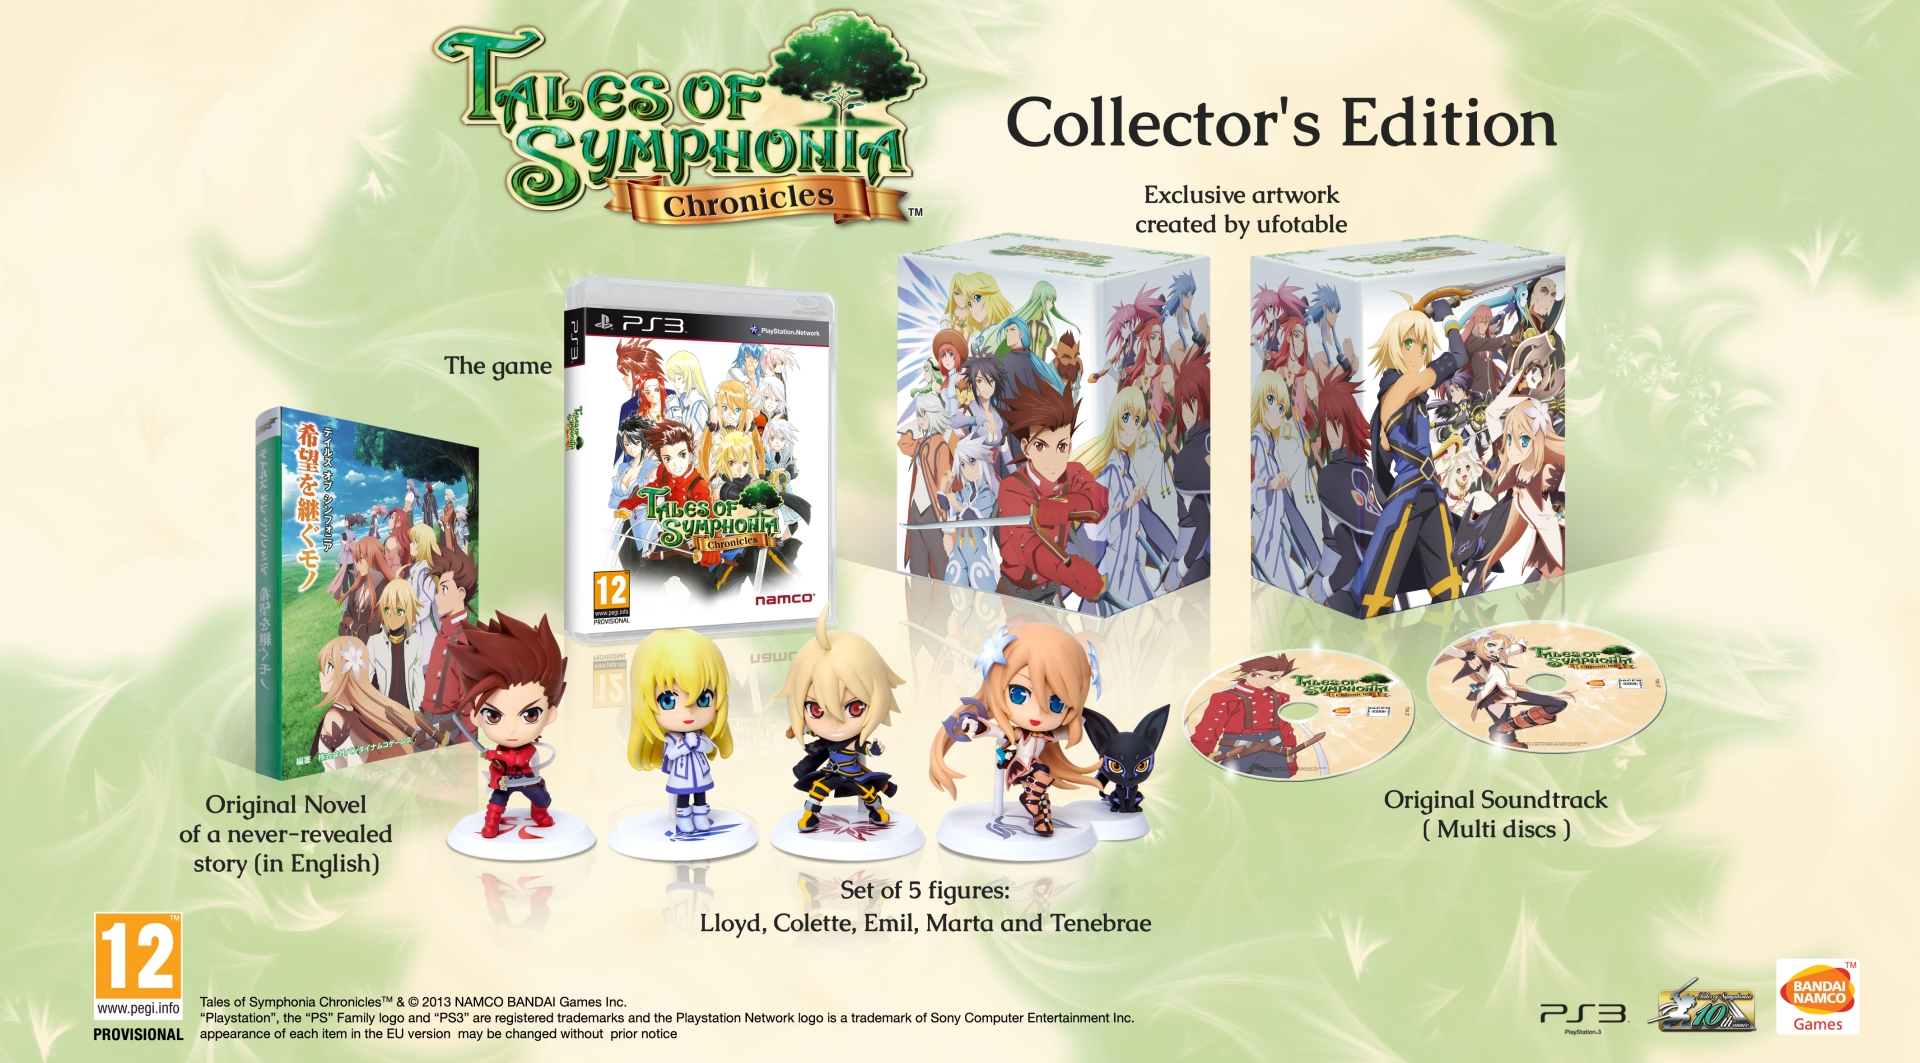 TalesofSymphonia-Chronicles PS3 Div 001